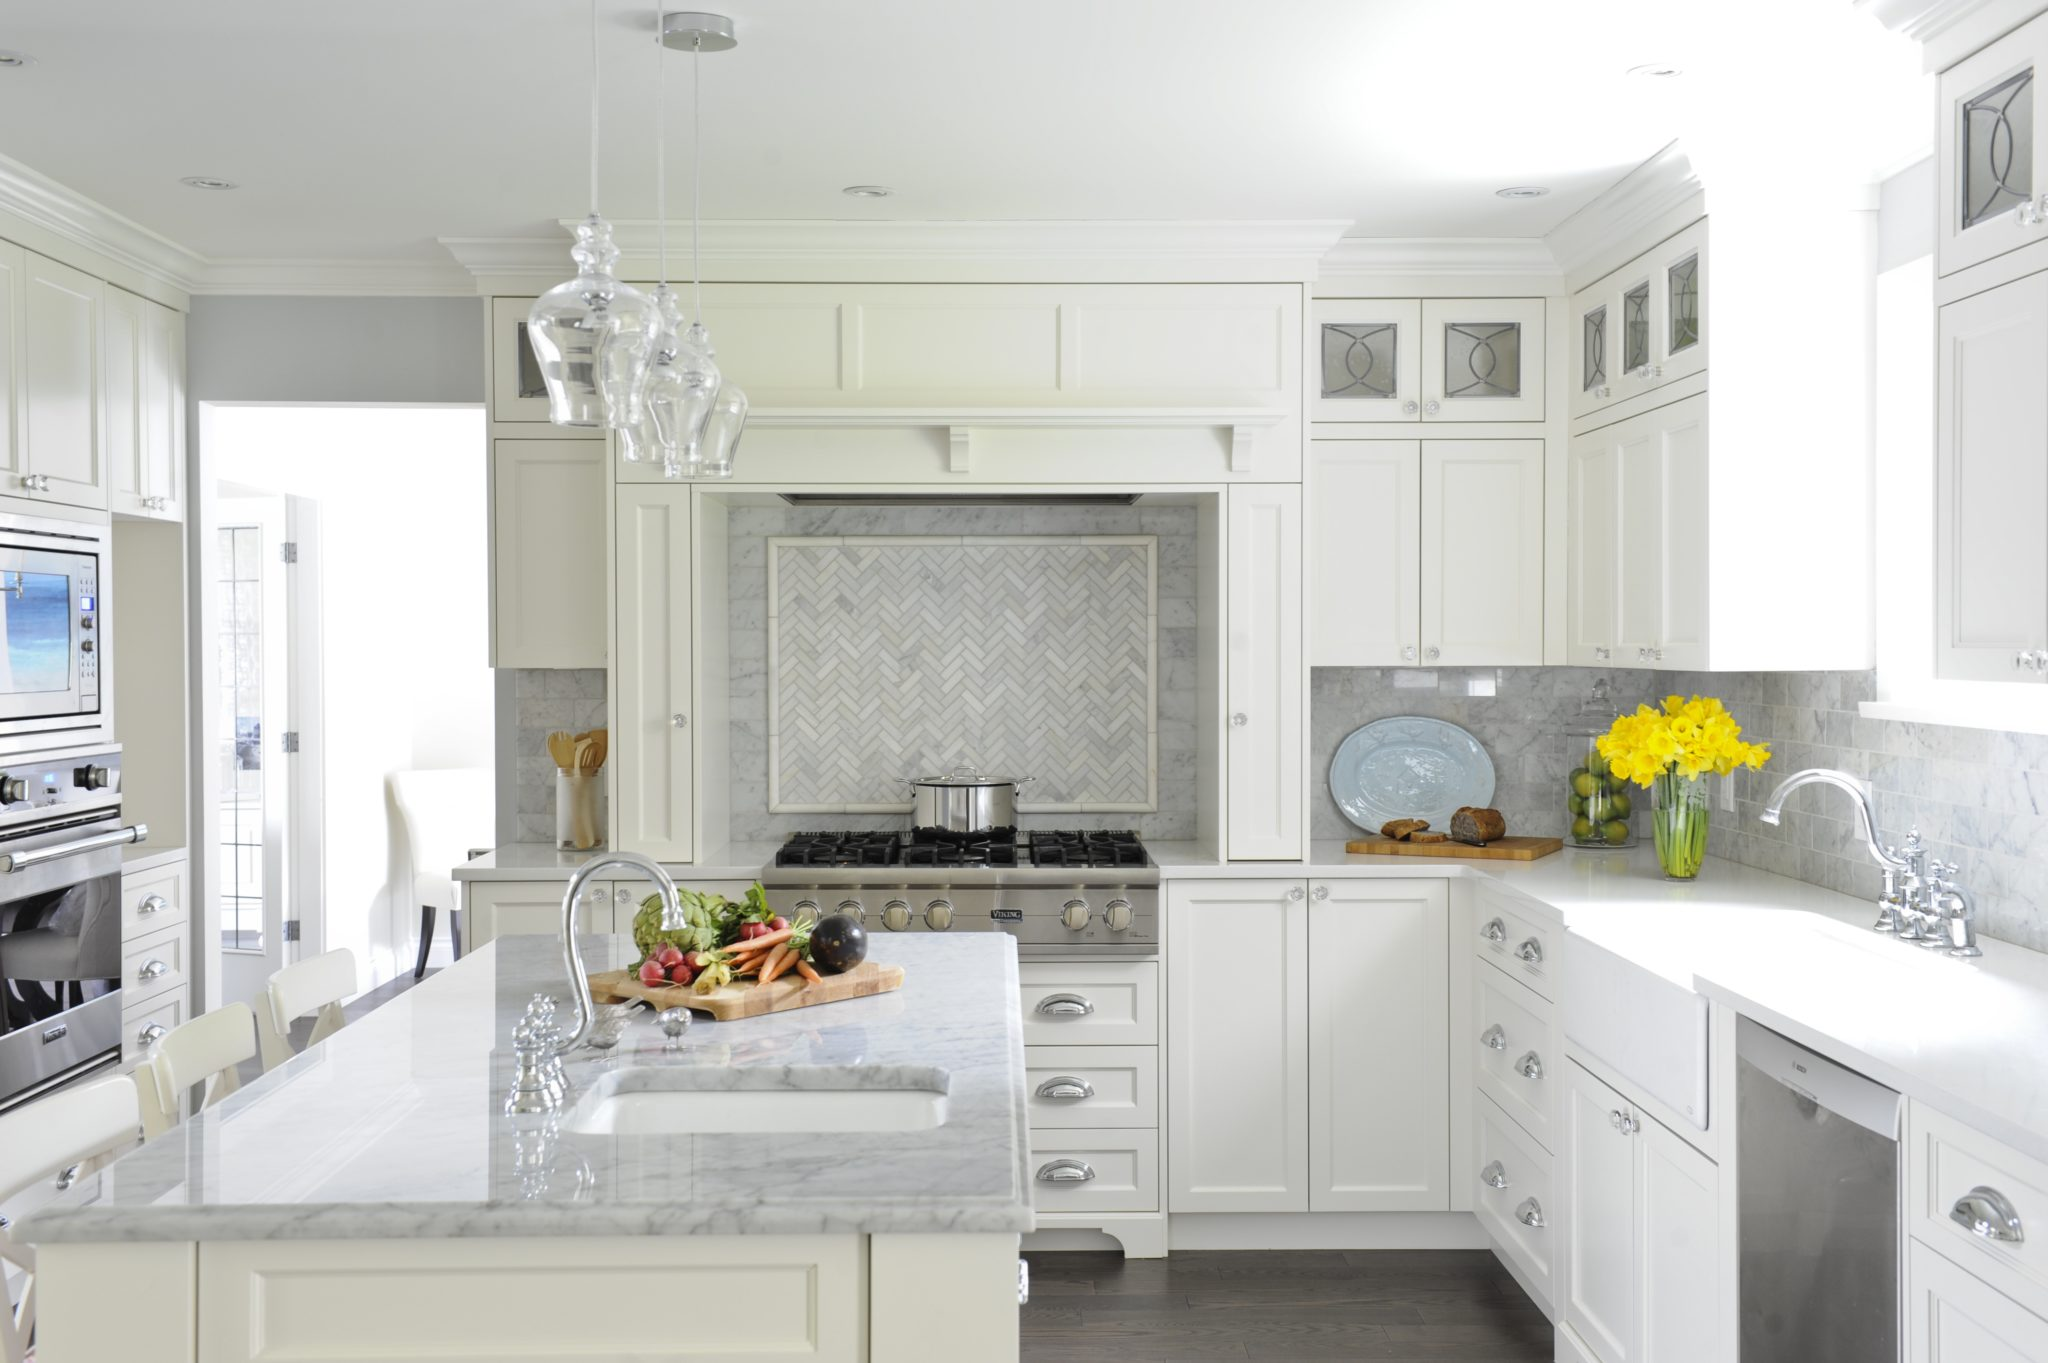 Bright Sherwood kitchen with Carrera marble and light cabinetry by Enviable Designs